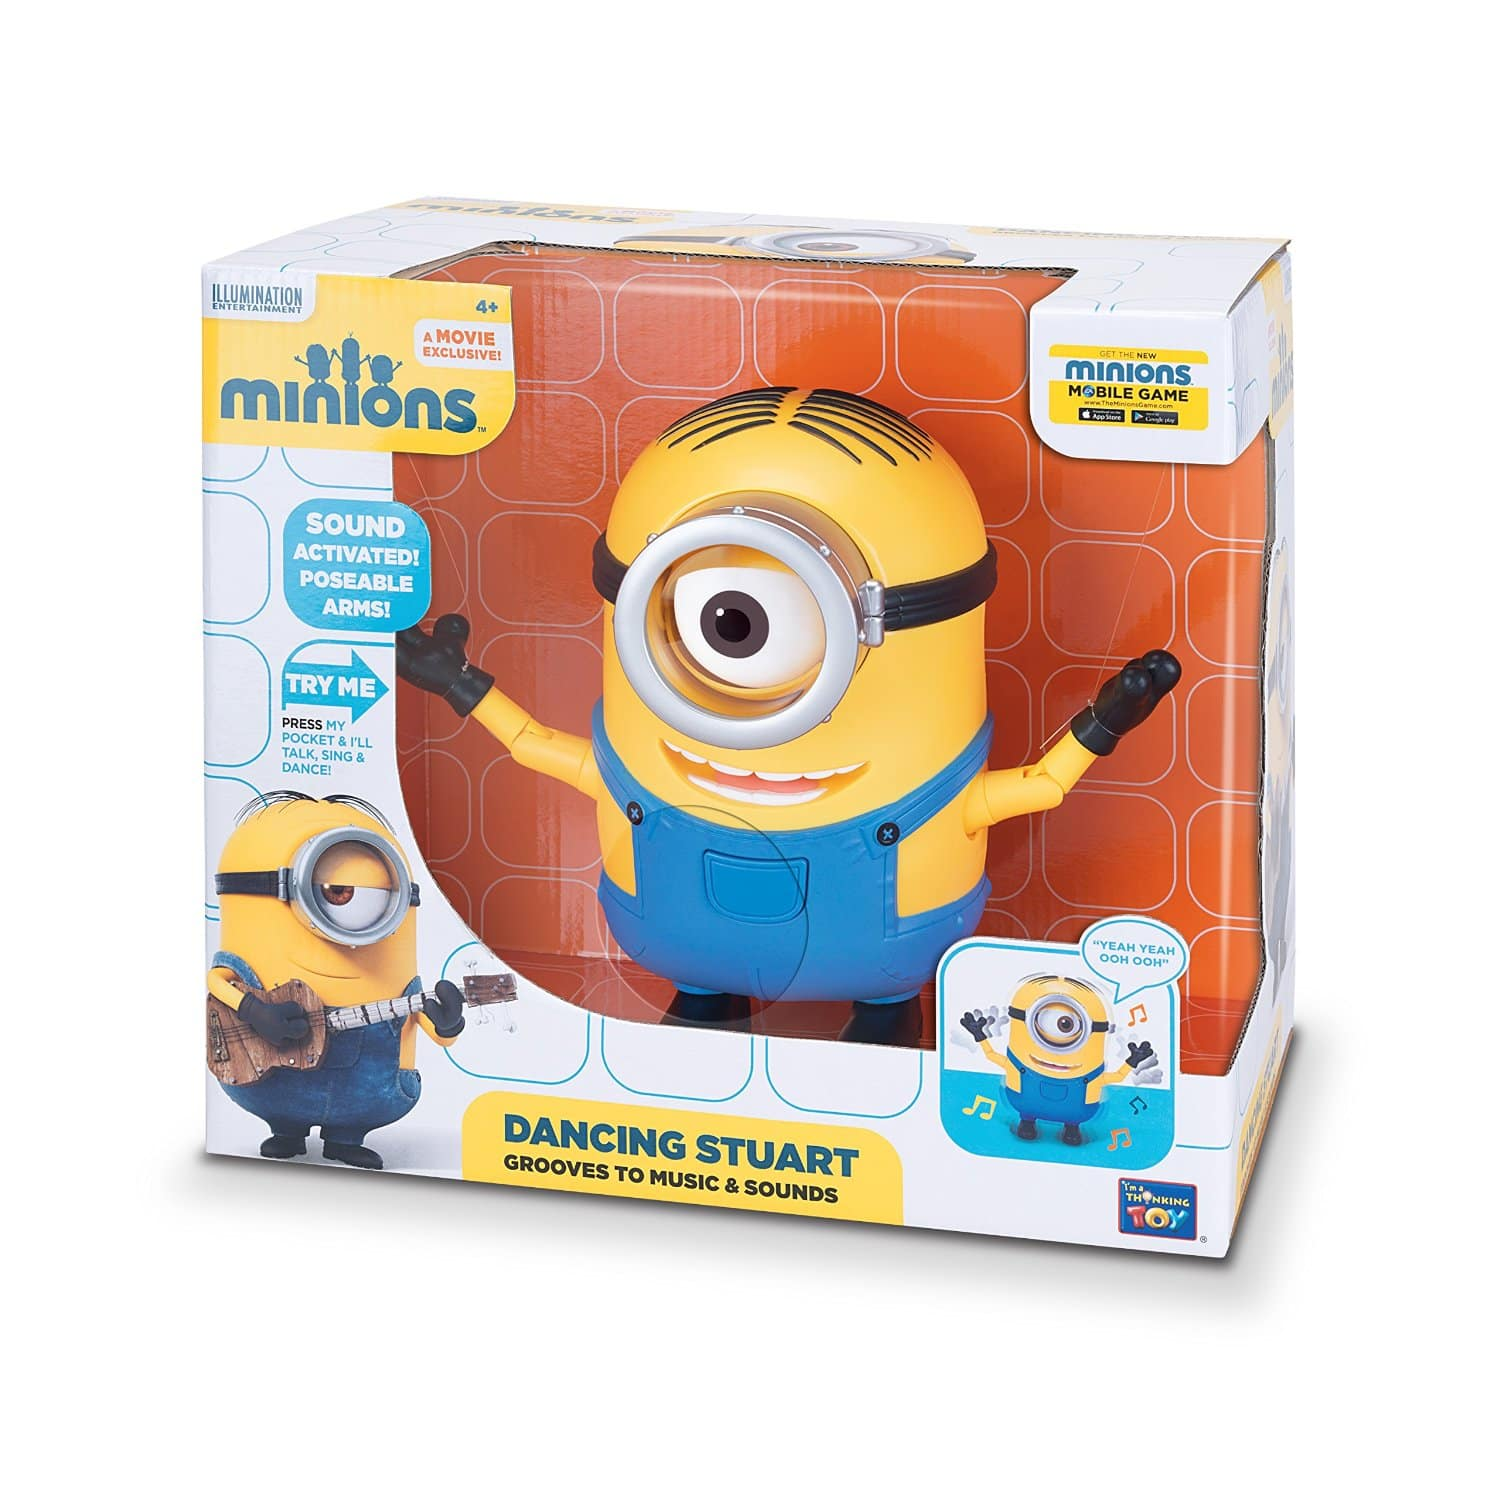 Minions Dancing Stuart $16.87 at Amazon FS with Prime